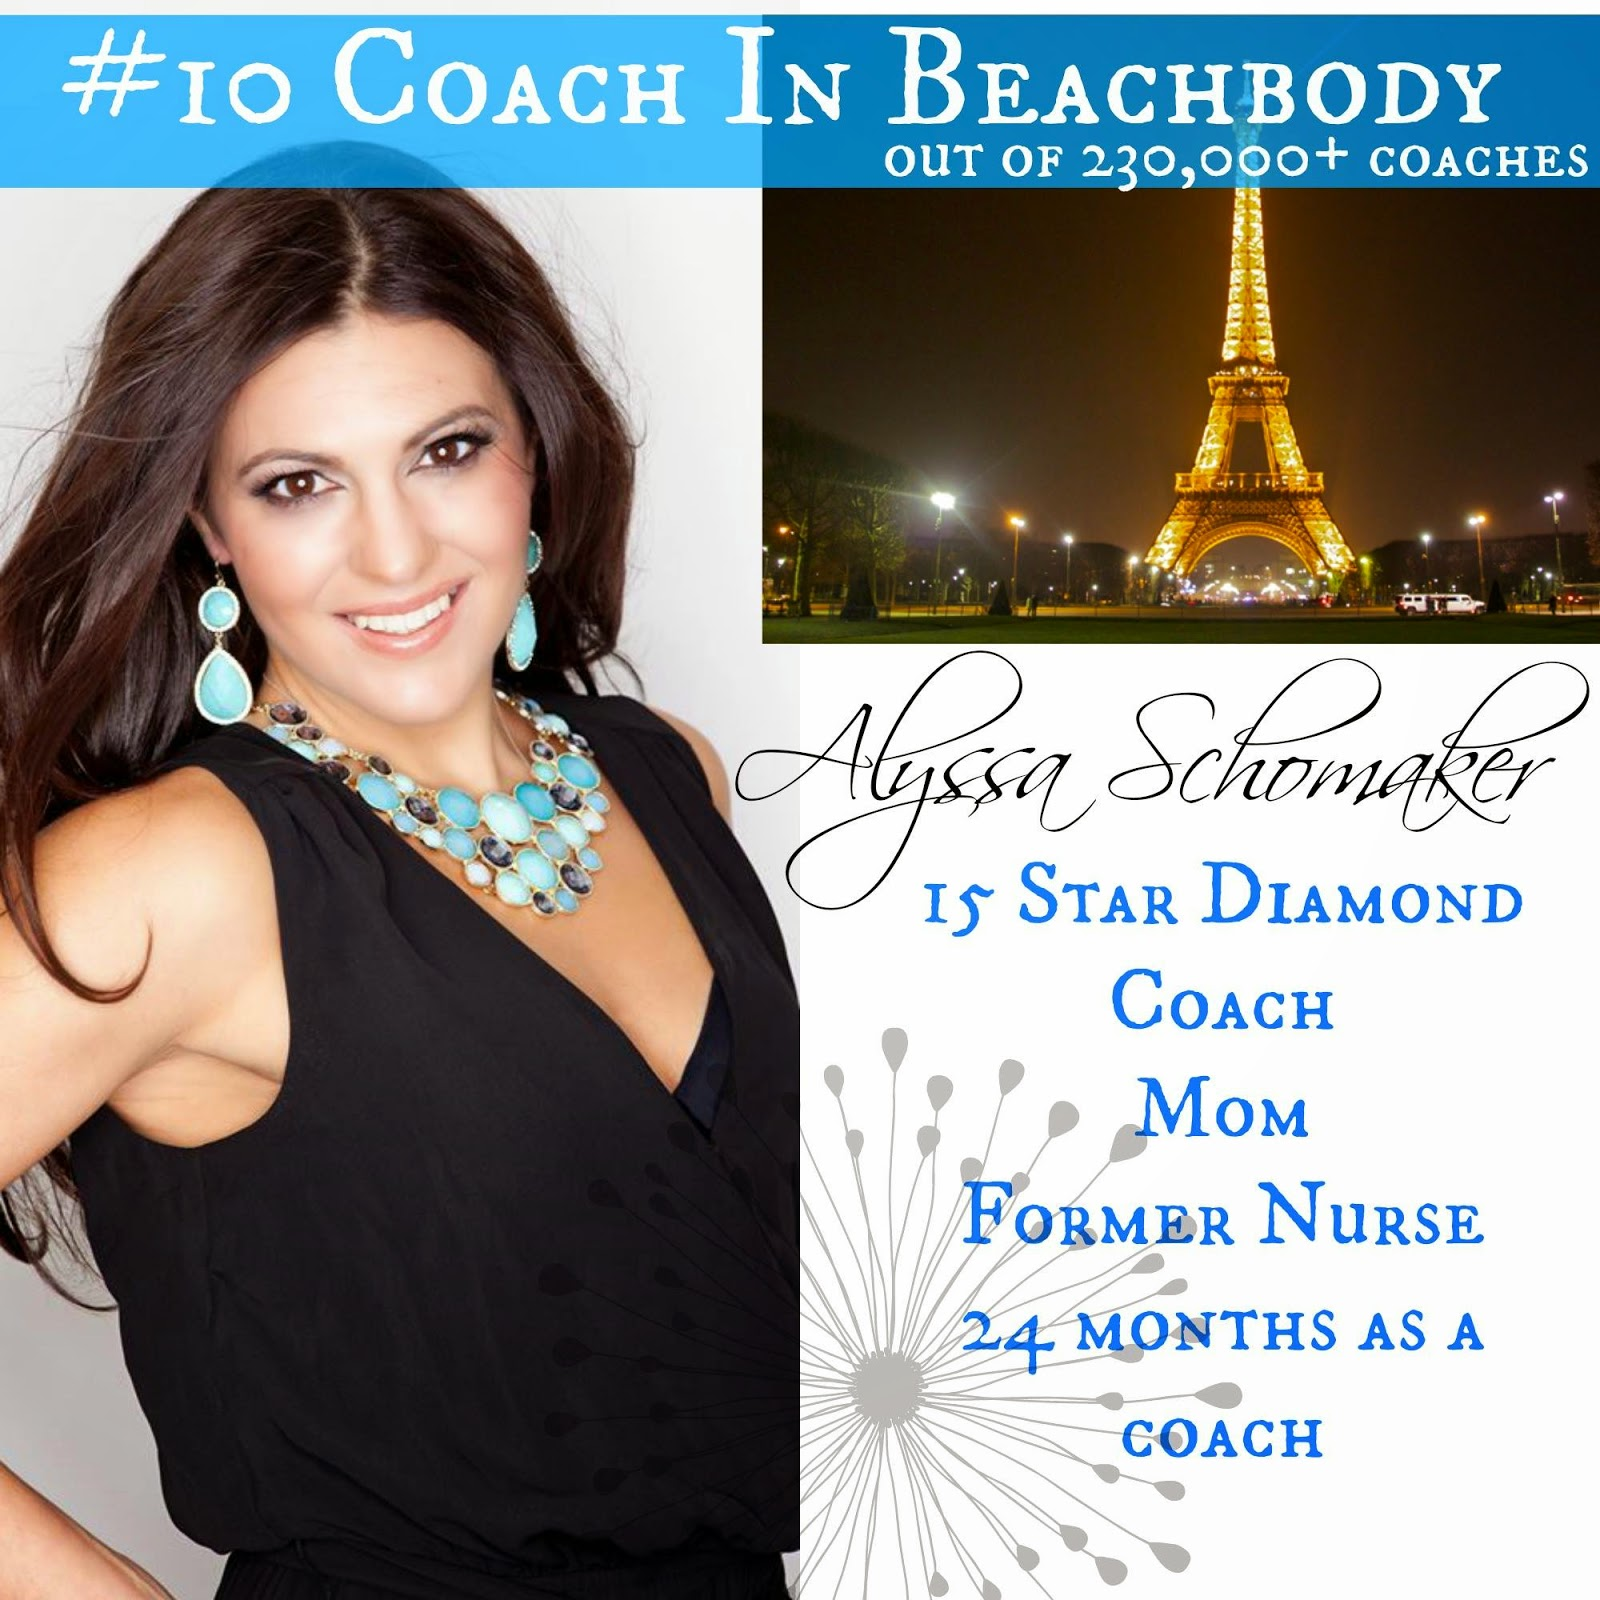 Royal Republic, Elite, Insanity, Insanity Max 30., Alyssa Schomaker, mom, Pittsburgh, Success, Top 10 Coach, Transformation, Successful Beachbody Coach